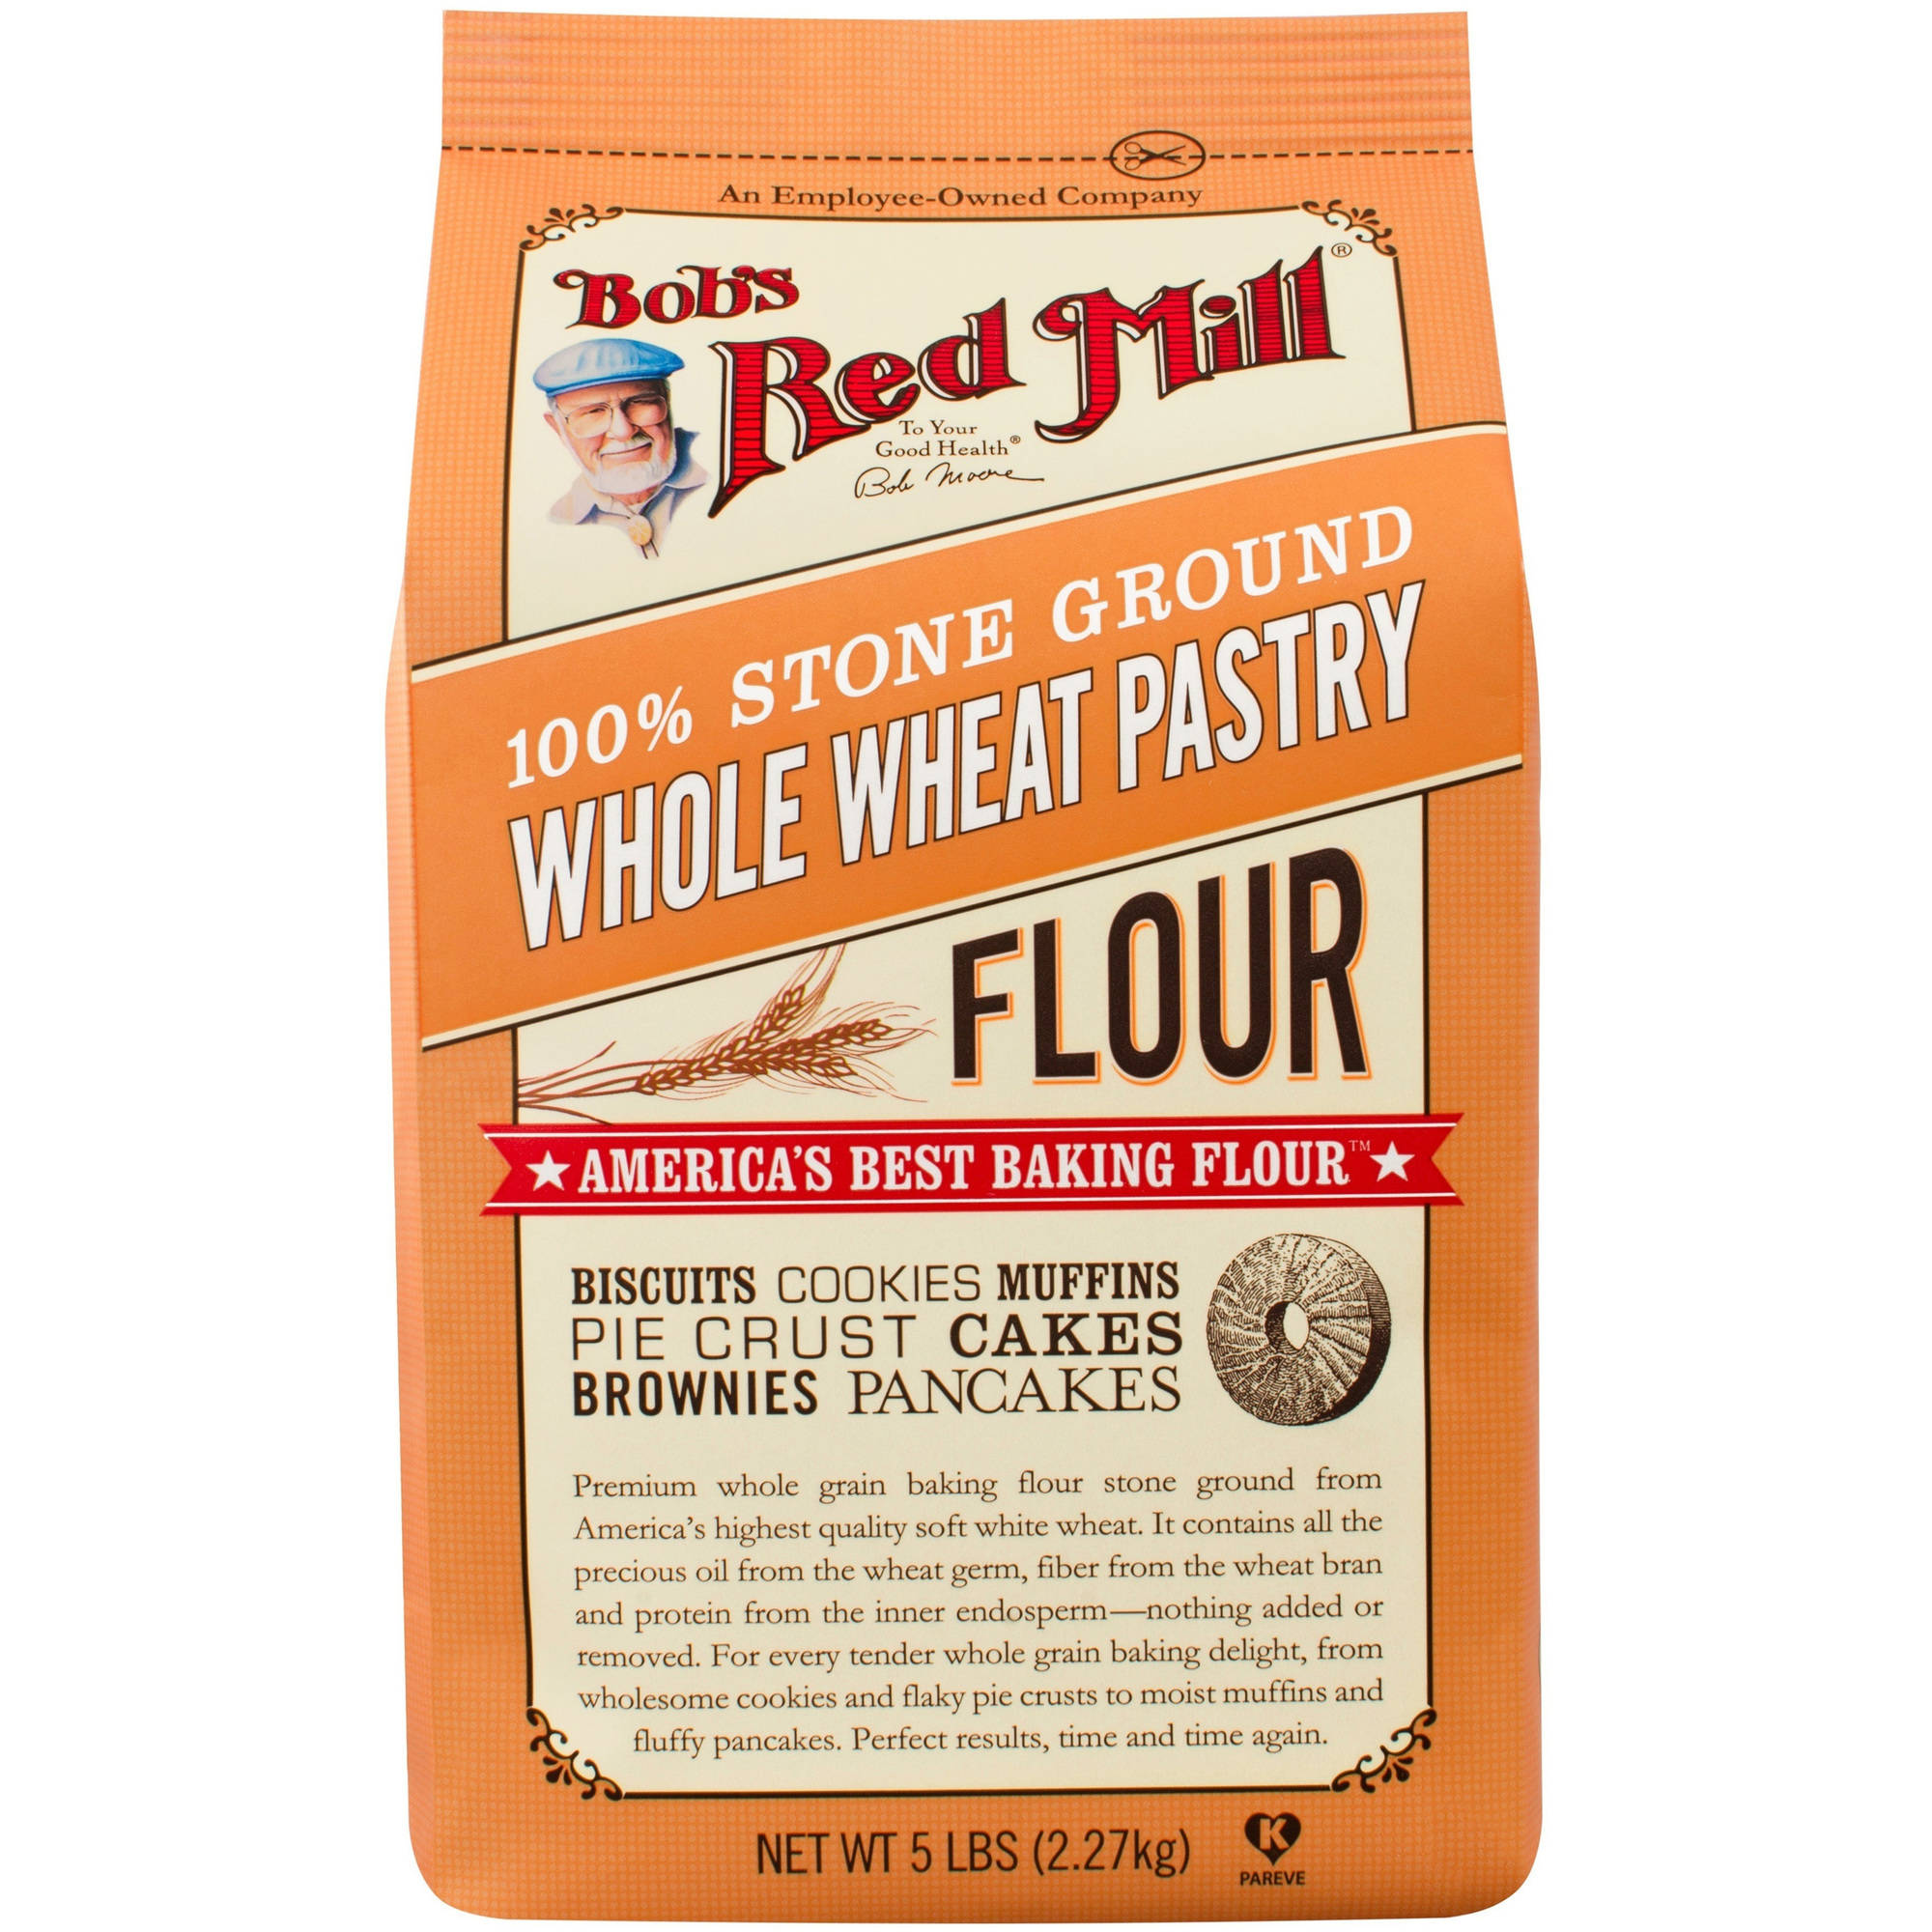 Bob's Red Mill Whole Wheat Pastry Flour, 5 lb (Pack of 4)